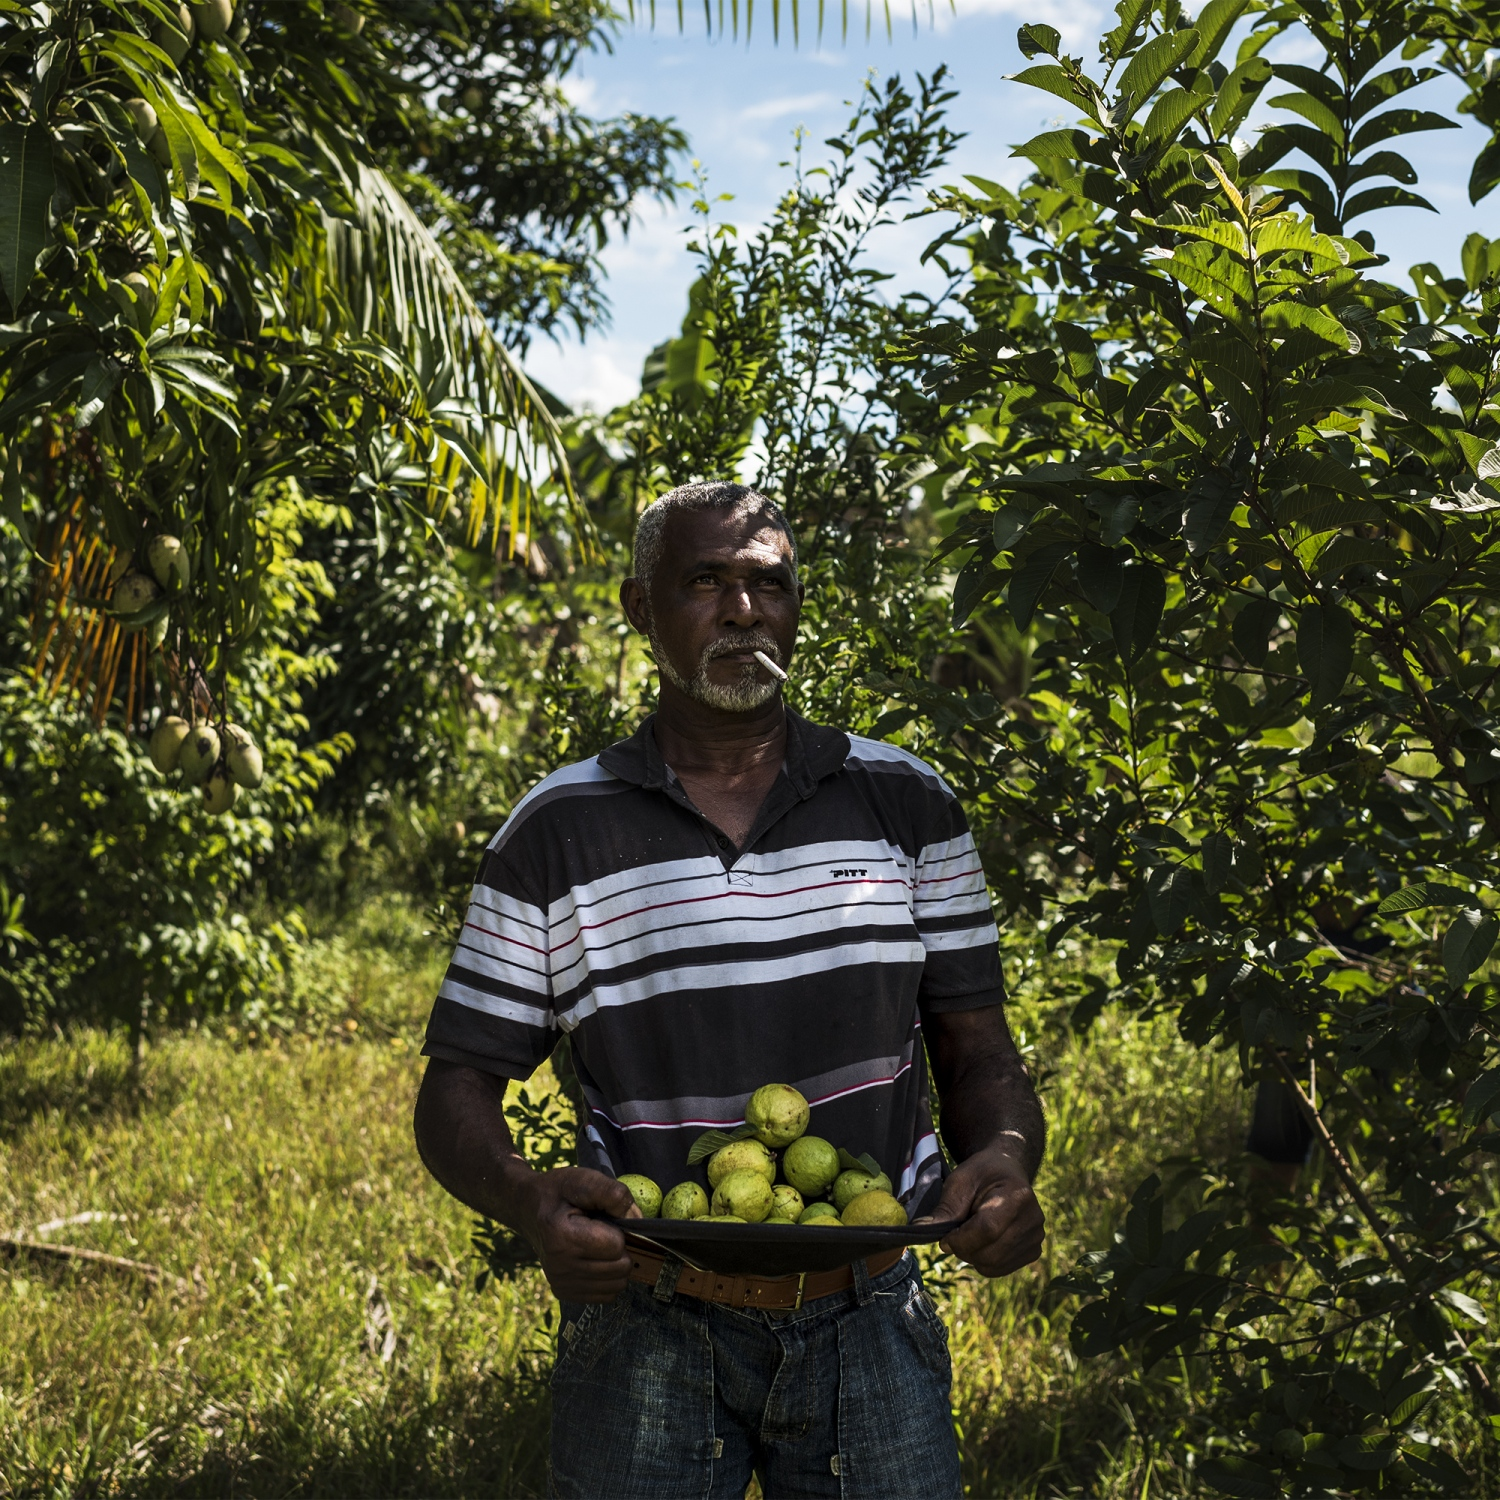 2016. Fisherman Raimundu Morad Araugo collects fruit from trees at the property he was displaced from on the banks of the Xingu River. Norte Energia the company building the Belo Monte dam destoryed his home and filled his well with rocks to prevent his return. The land will be flooded only on years with higher than normal rainfall. /Aaron Vincent Elkaim